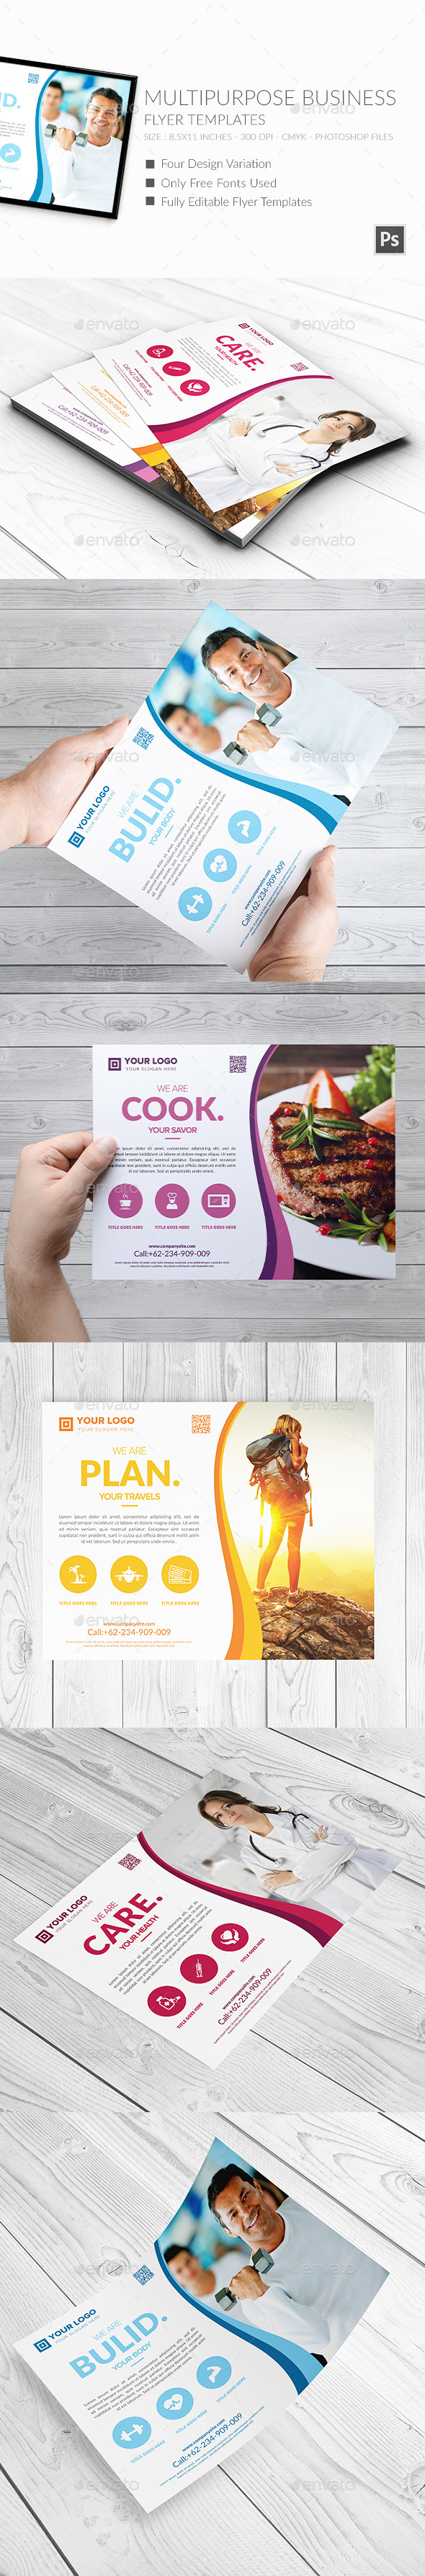 Multipurpose Business Flyers Templates 2 - Corporate Flyers